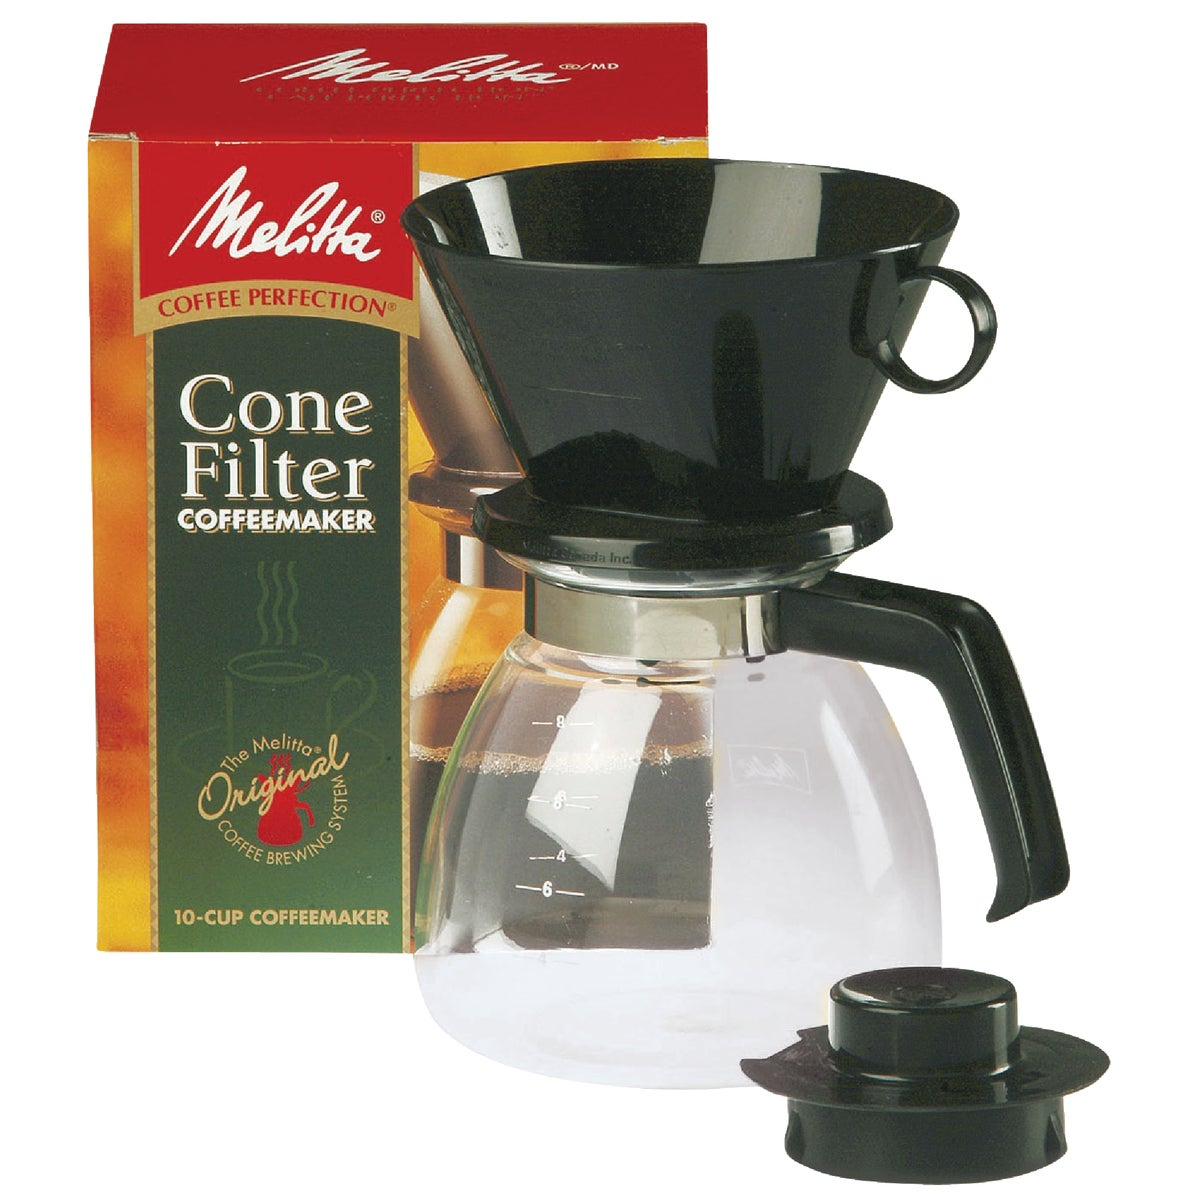 Coffee Makers That Use Cone Filters : Melitta Gourmet 10 Cup Manual Coffeemaker-DRIP CONE COFFEE MAKER 55437640619 eBay